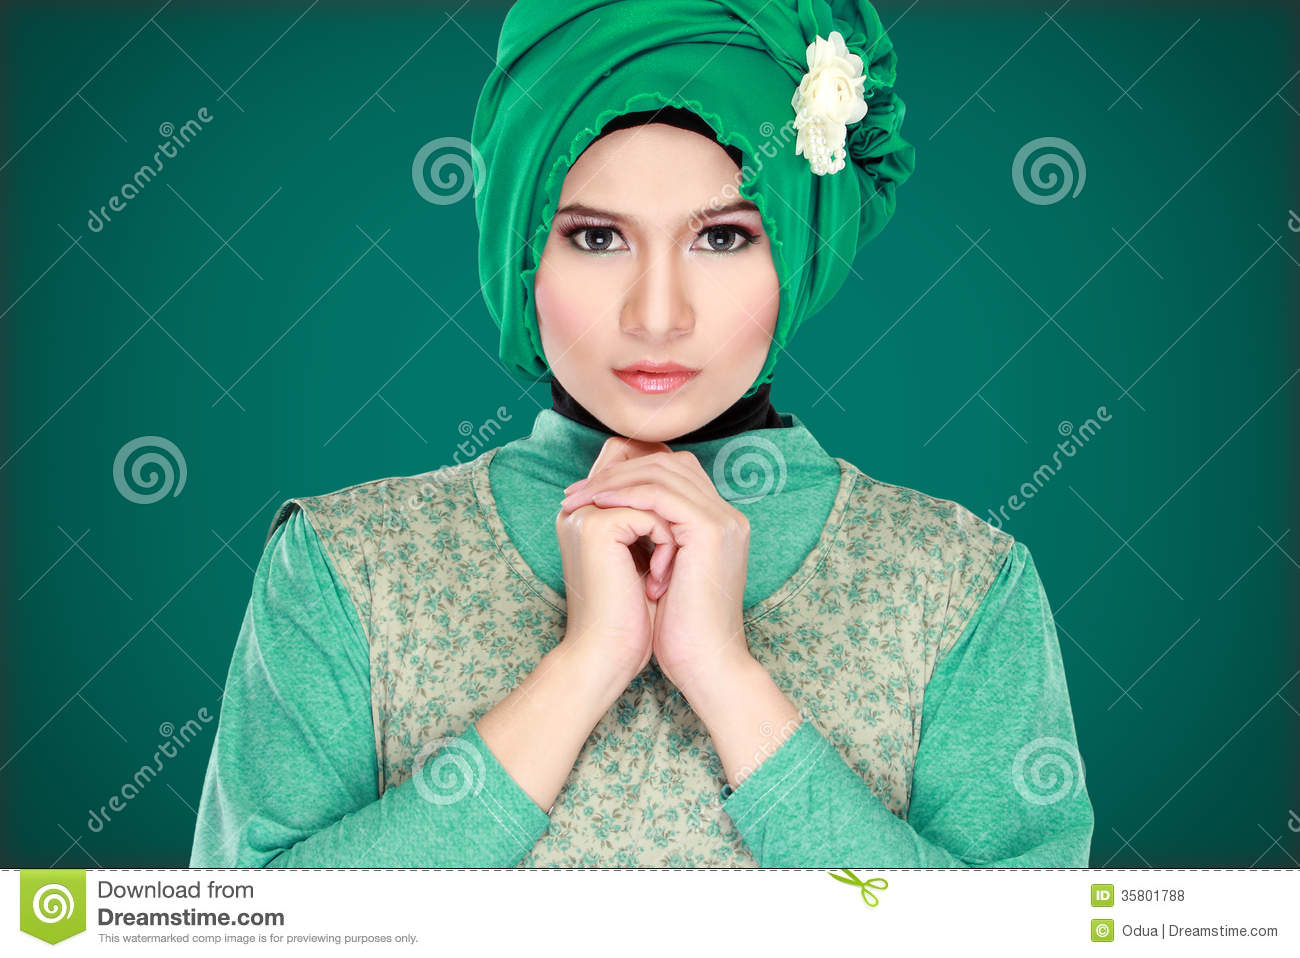 muslim single women in green Hijab ( حجاب): the first type of hijab that is most commonly worn by women in the west is a square scarf that covers the head and neck, but leaves the face clear.